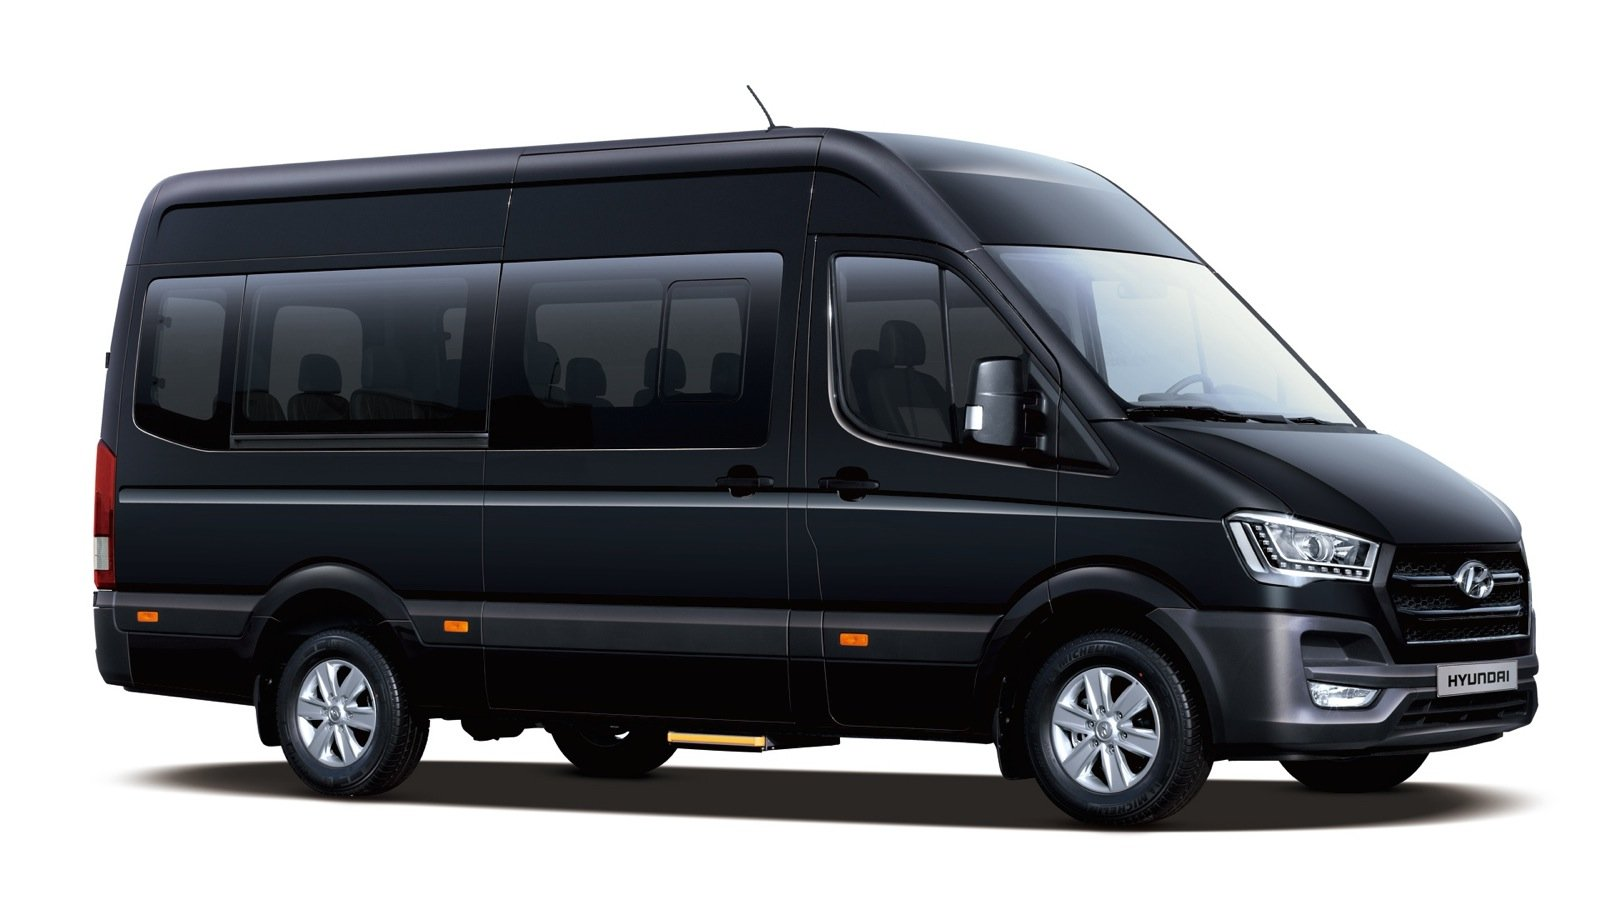 2015 Hyundai H350 large van revealed : UPDATED with new images - photos | CarAdvice